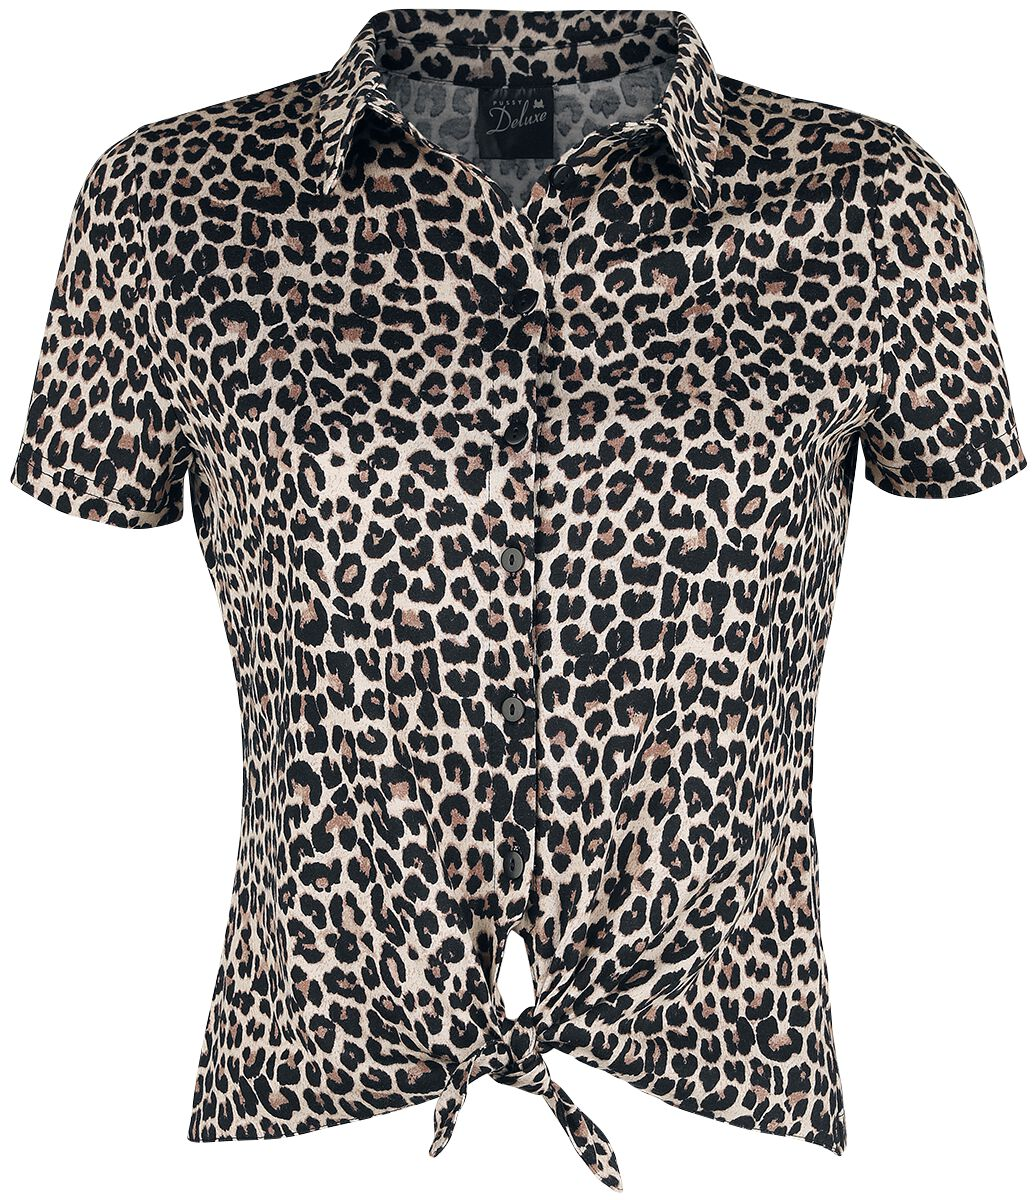 Pussy Deluxe Leo Short Blouse Bluse leopard 392260